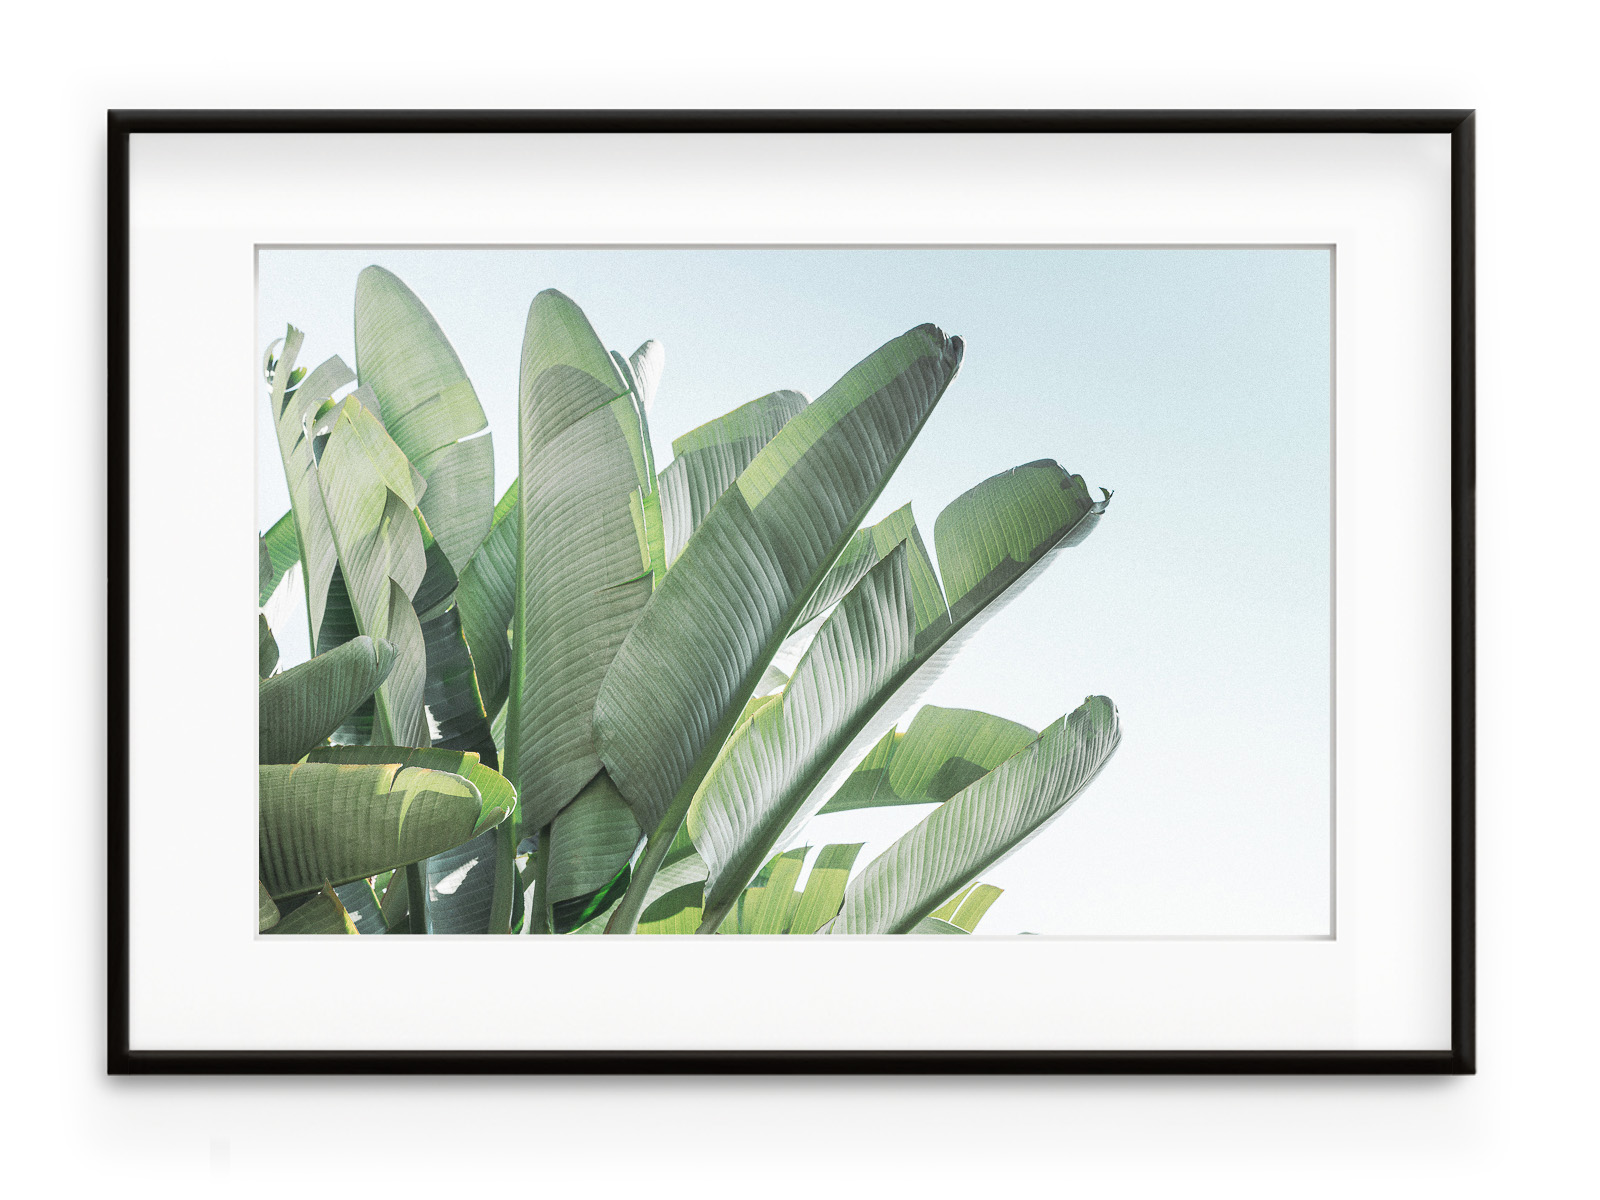 Tablou Banana Leaves II Aluminium Noir